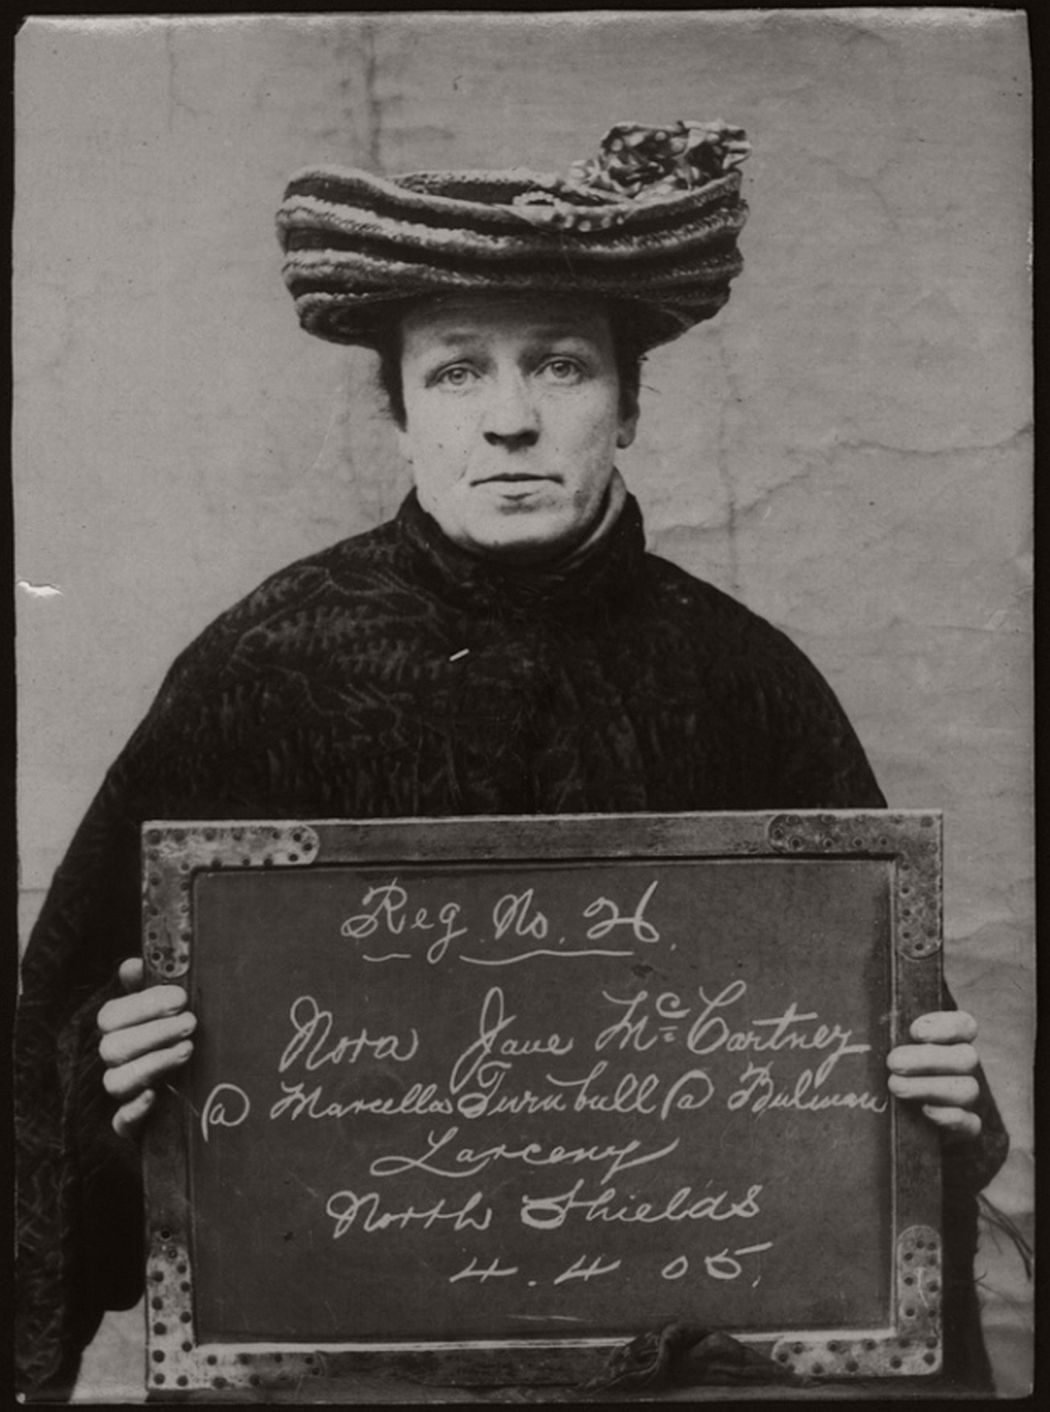 vintage-mug-shot-of-women-criminals-from-north-shields-1903-1905-04